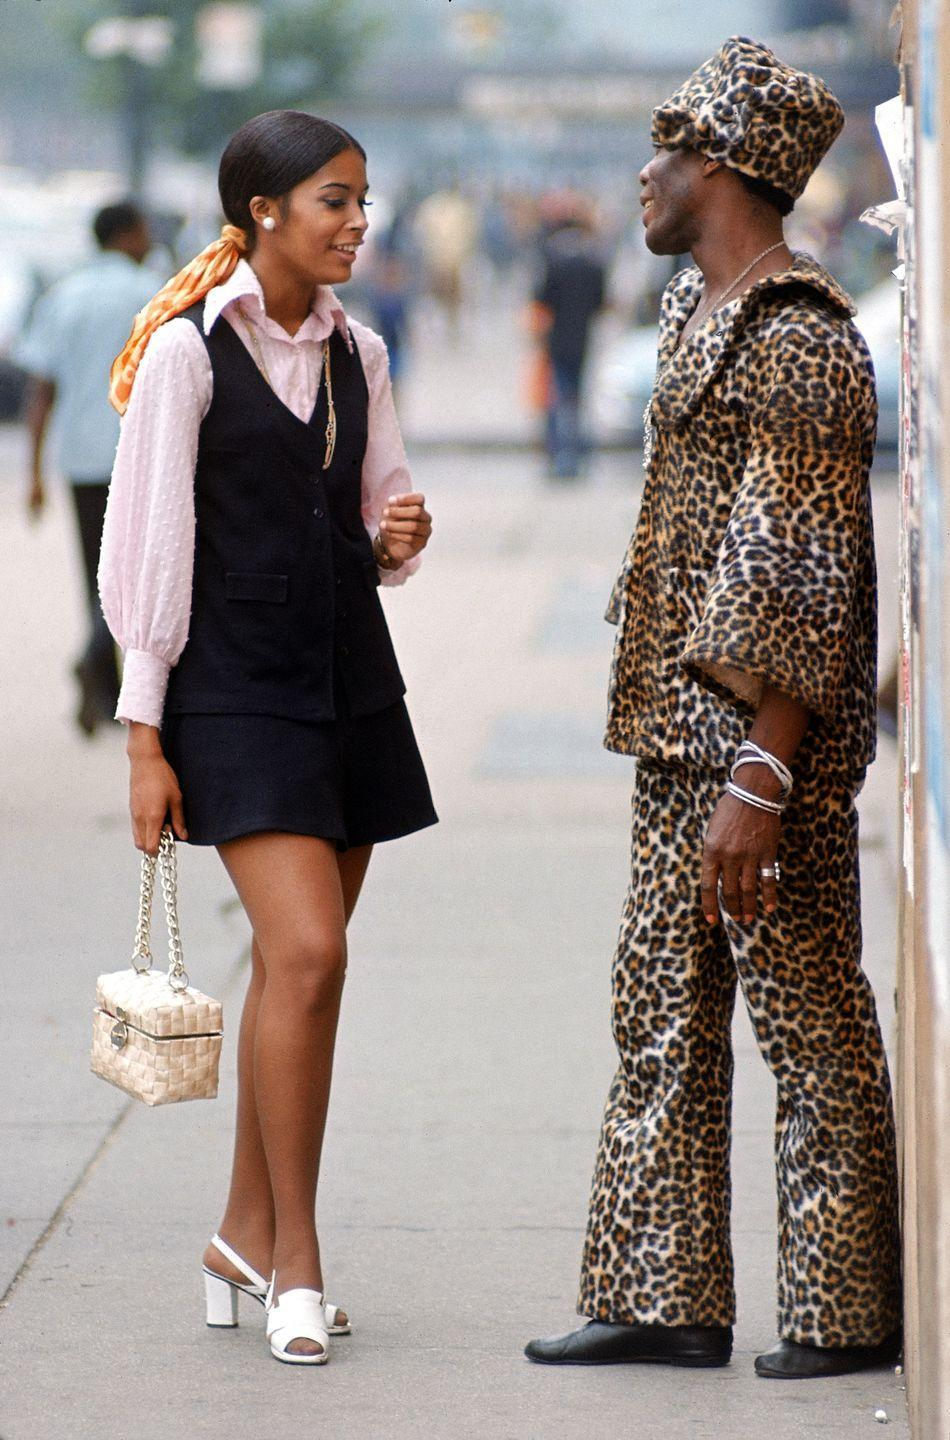 <p>In the '70s, the miniskirt evolved into the jumper dress, preferably worn over a turtleneck or button-down blouse. </p>